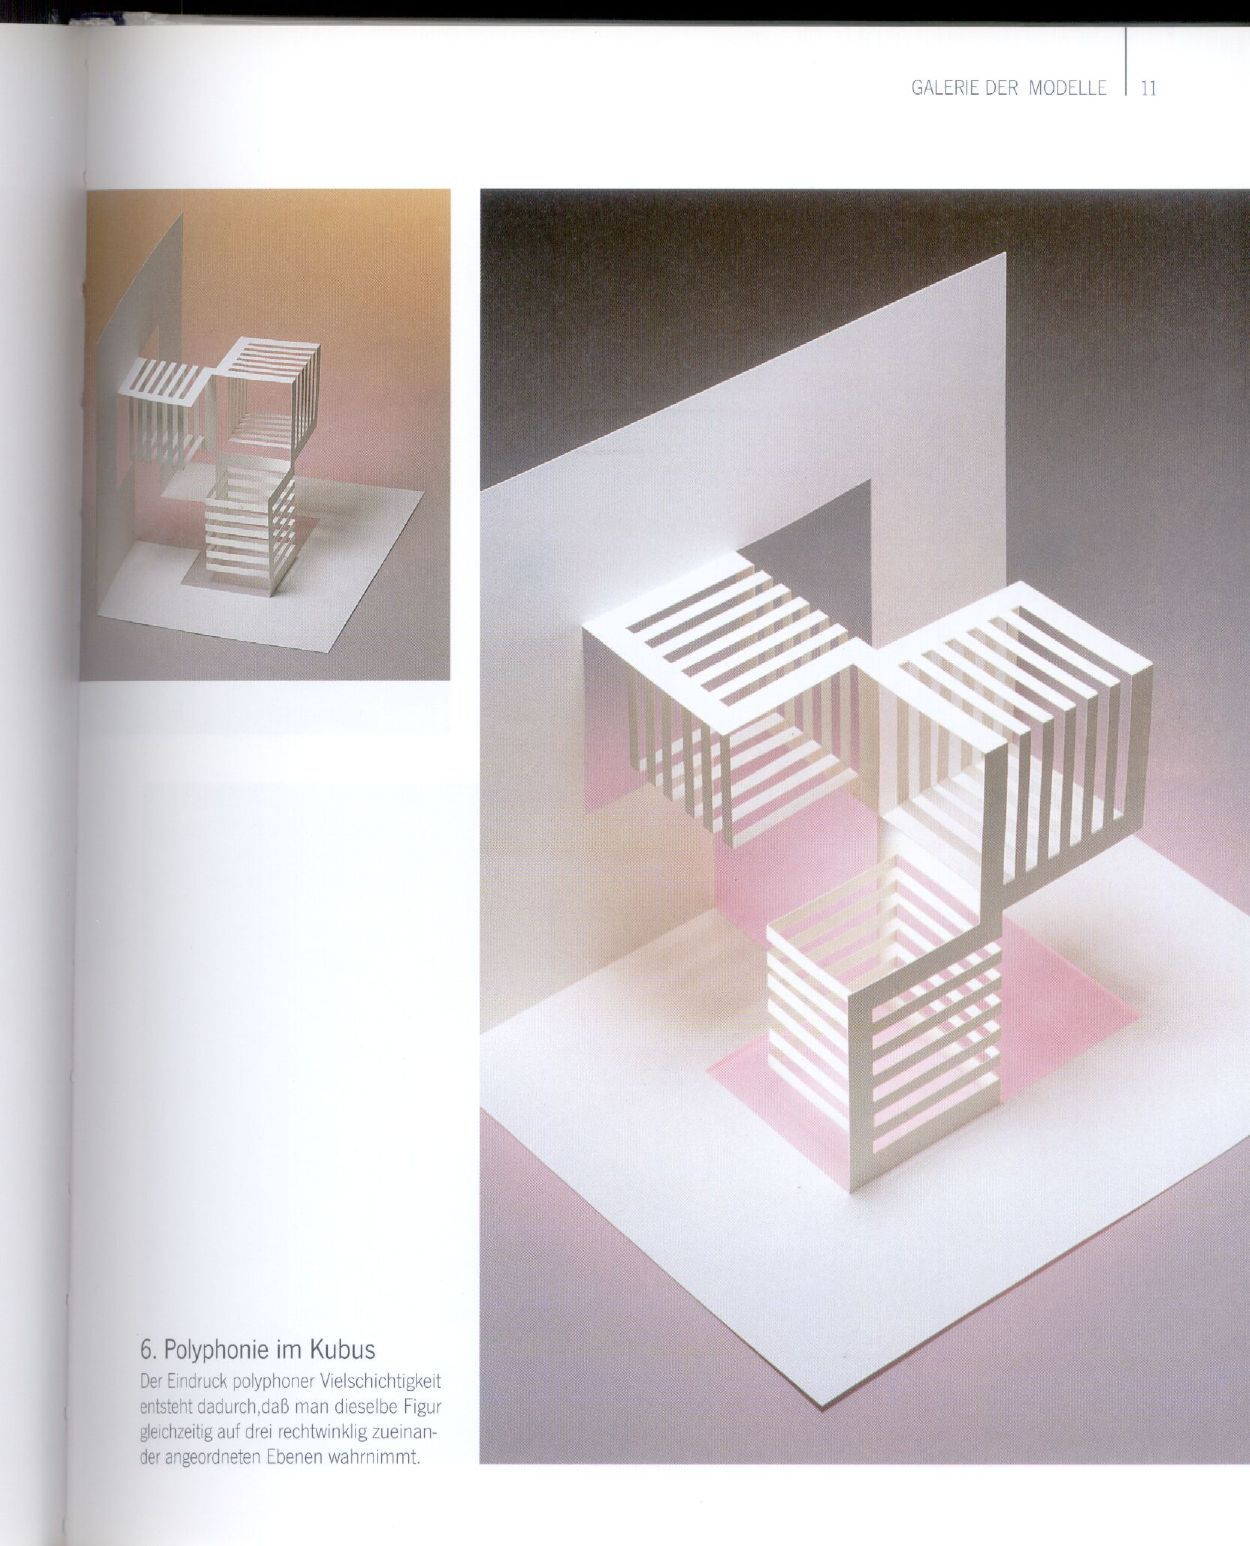 Xxxx kirigami origami and origami architecture for Kirigami paper art